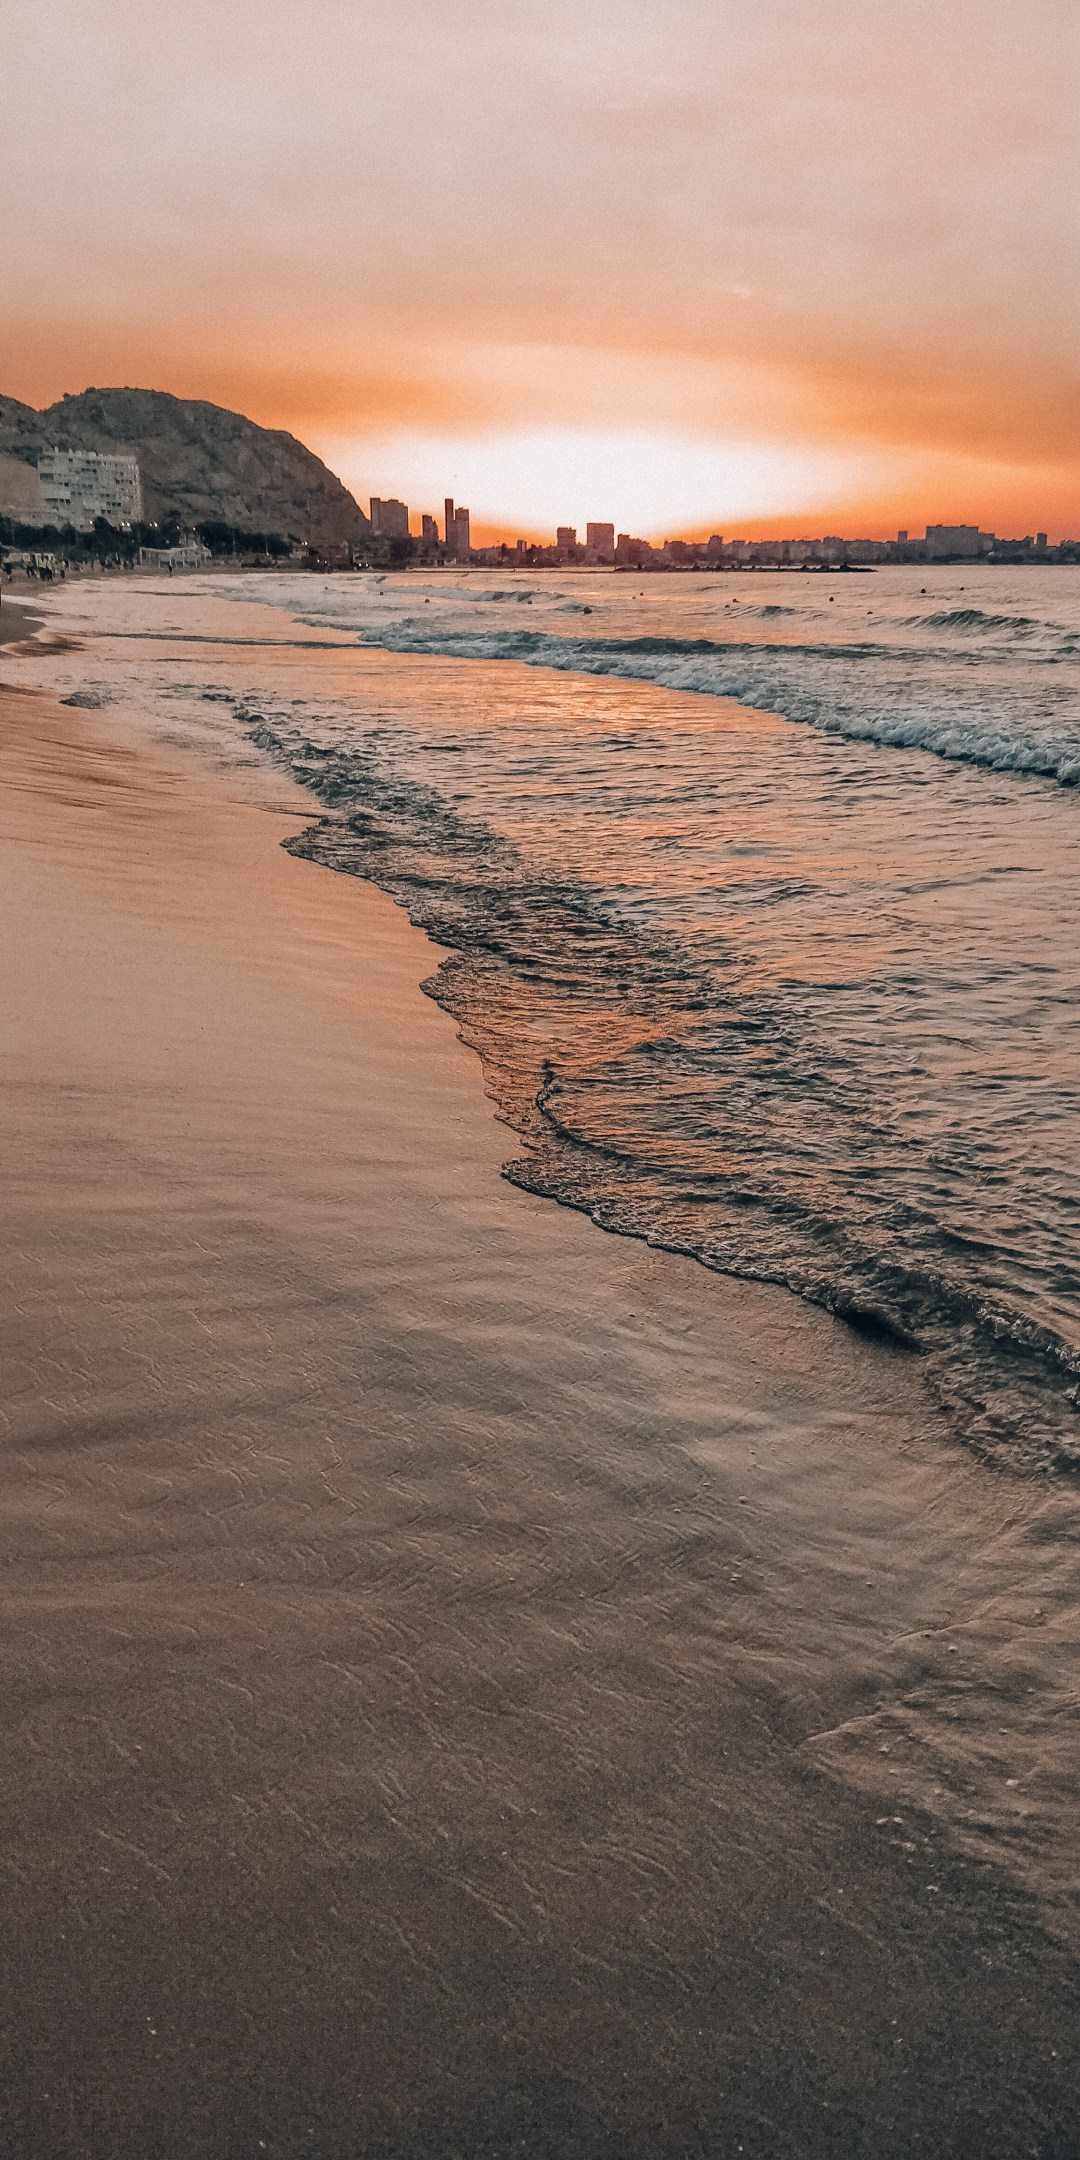 Pink sunrise in Alicante beach with waves